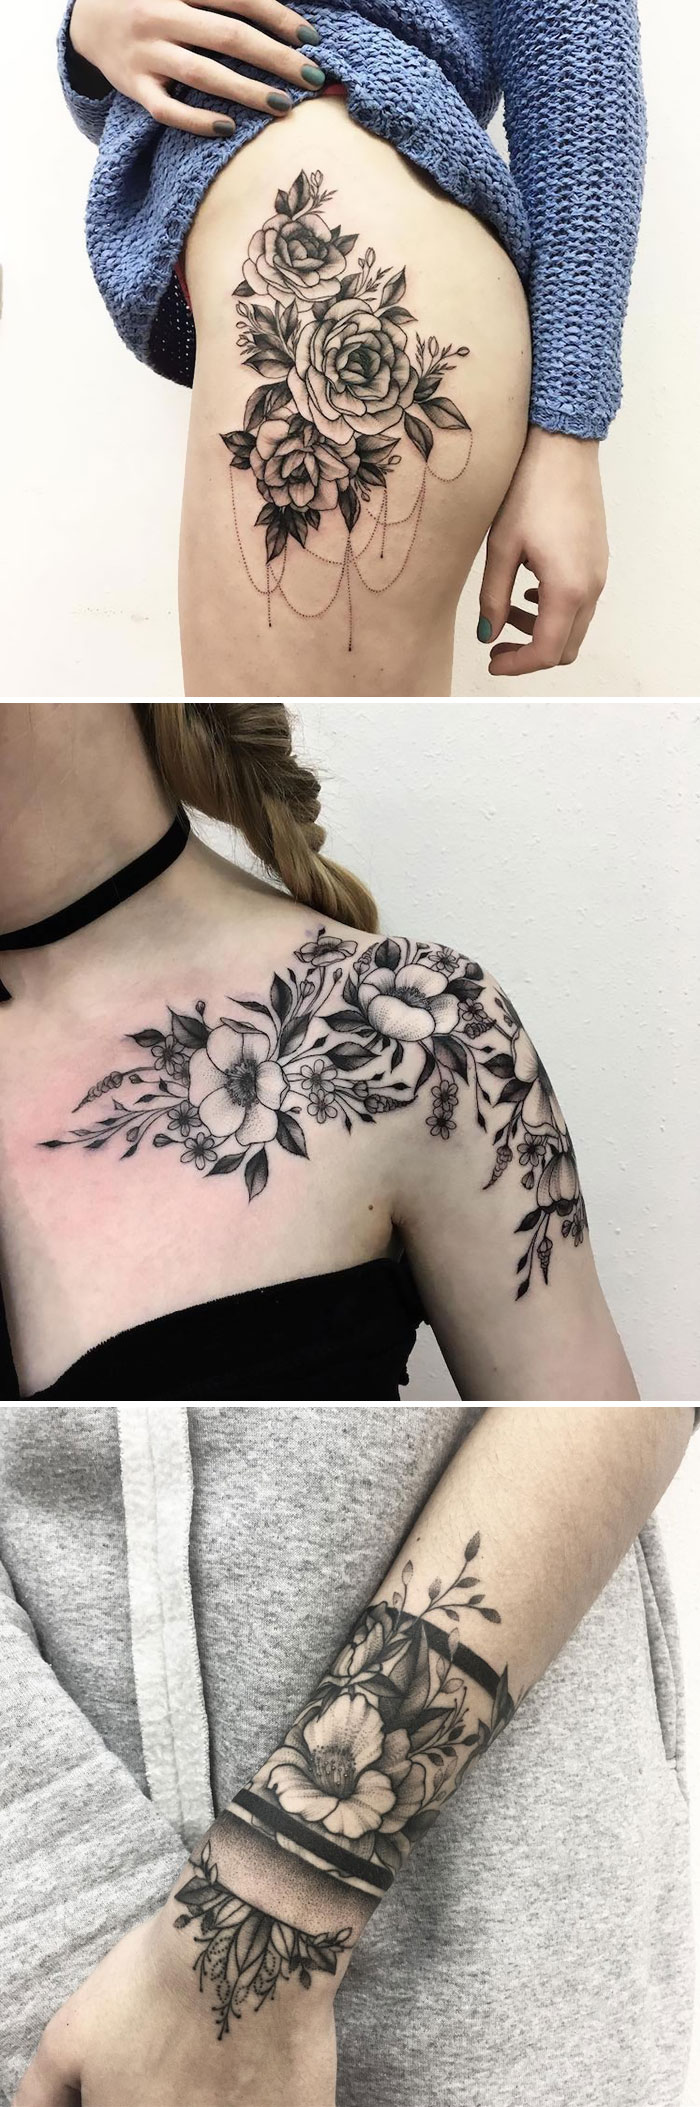 30 Floral Tattoo Artists Who Will Make You Want To Get Inked Bored Panda